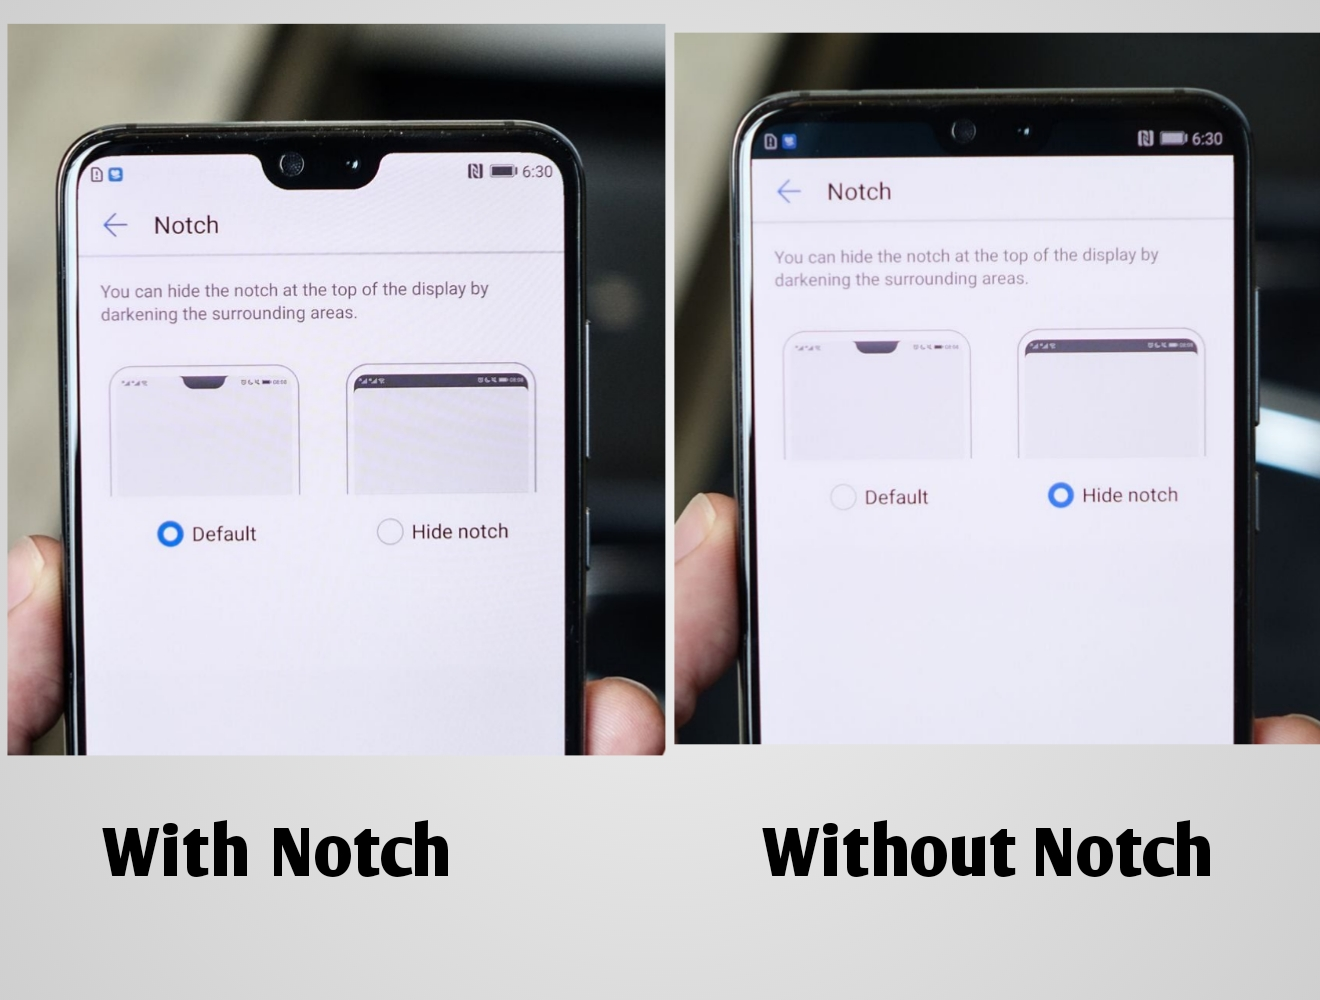 The notch modes on the Huawei P20 and P20 Pro